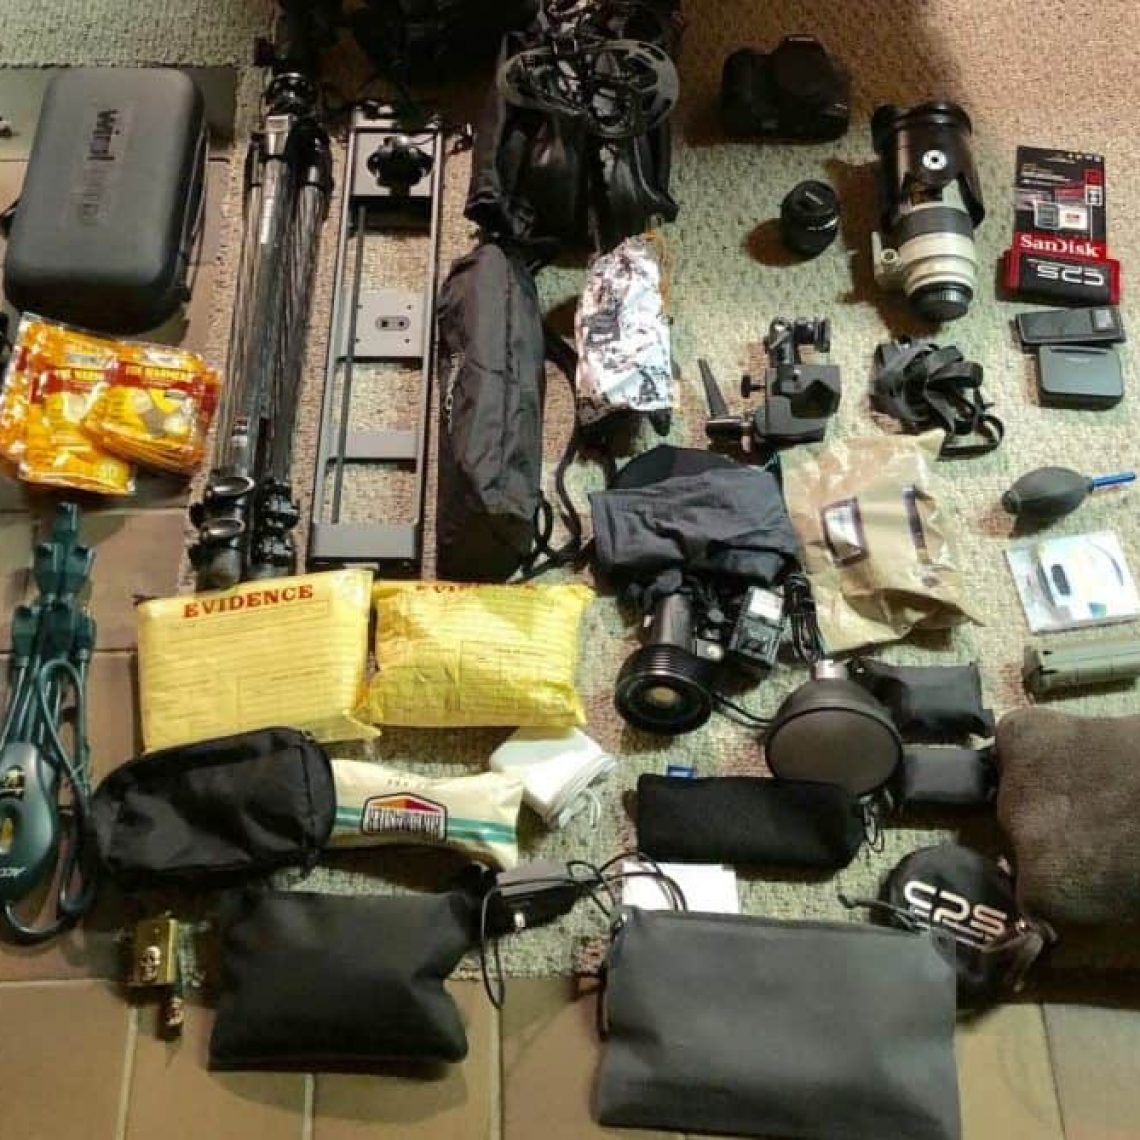 Stonetree Creative - Camera gear spread out on a floor